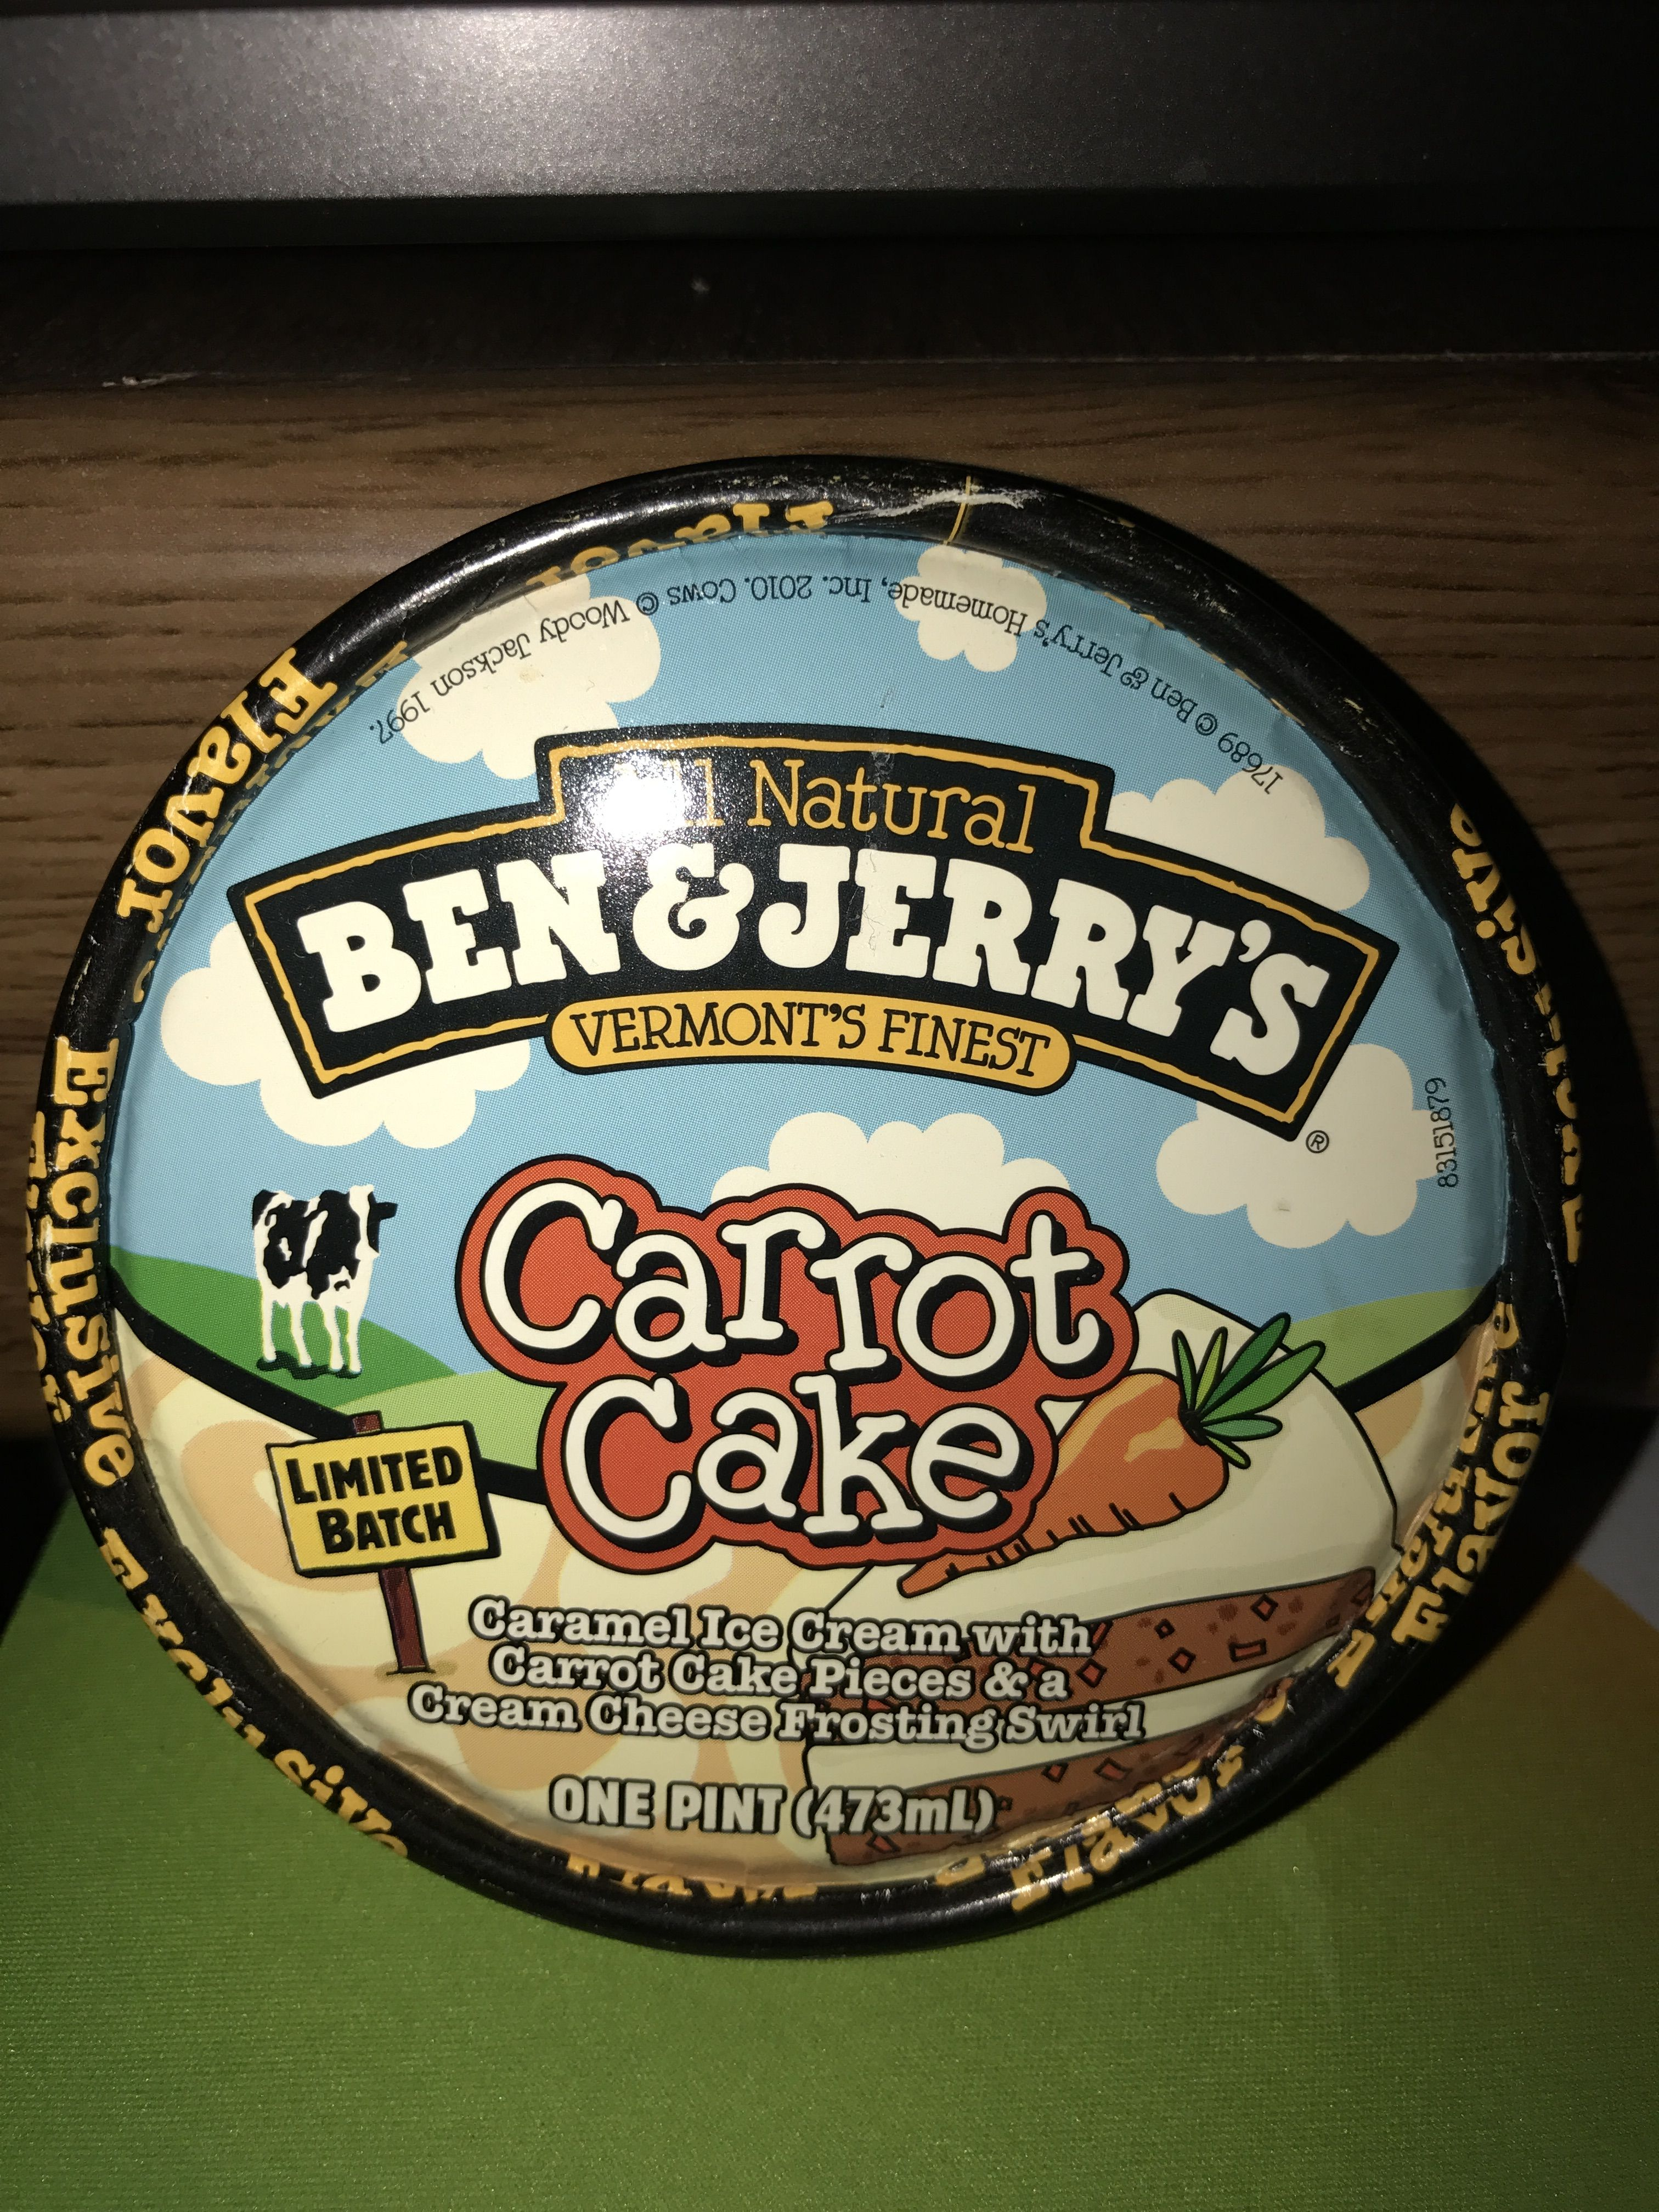 All natural Ben & Jerry's vermont's finest carrot cake